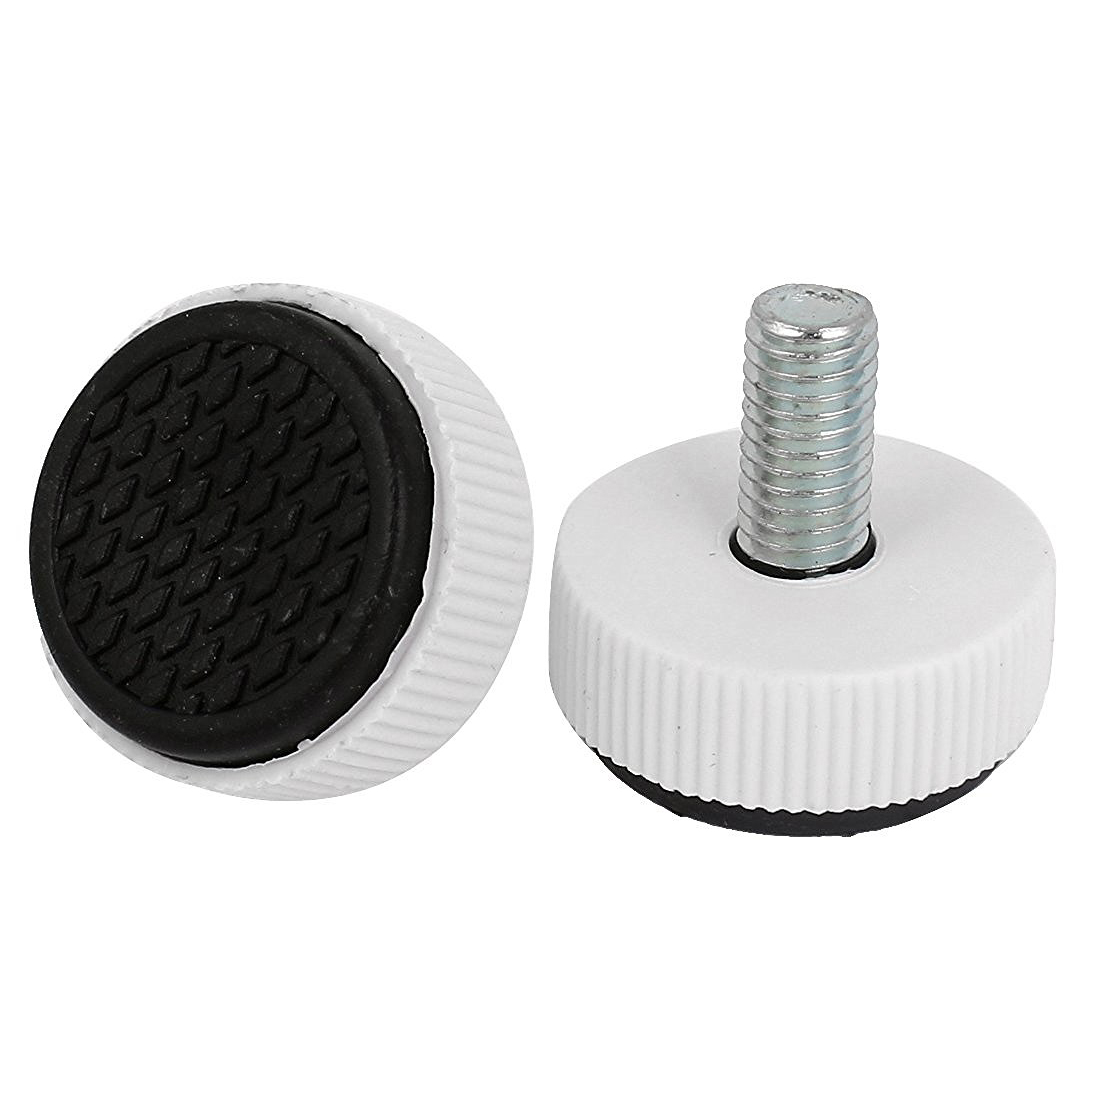 Imported From Abroad Hot Sale M8 X 15mm Adjustable Screw On Furniture Glide Leveling Feet Leg 10pcs Driving A Roaring Trade Furniture Toys